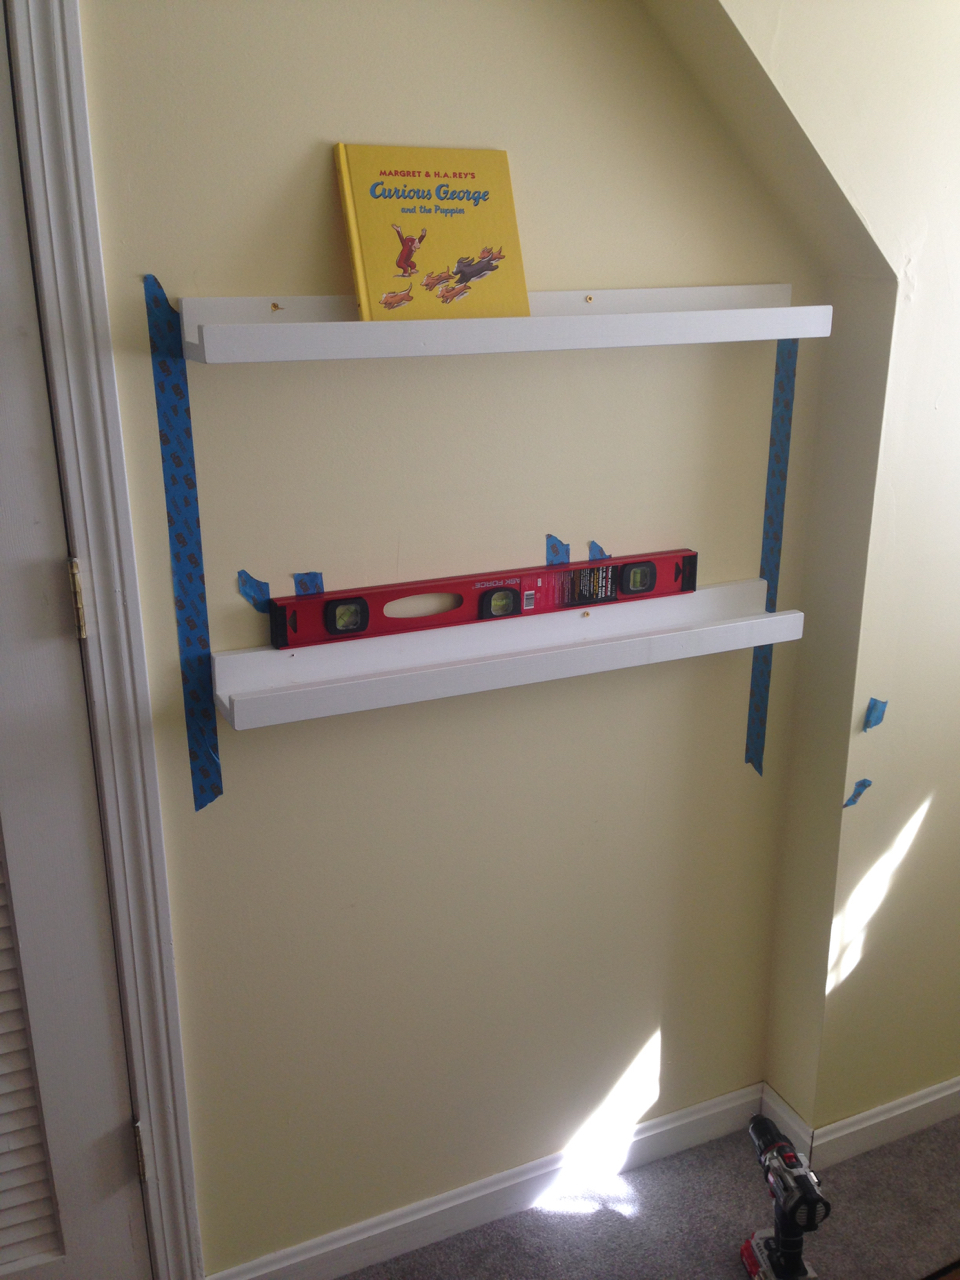 Leveling the book rails for hanging.